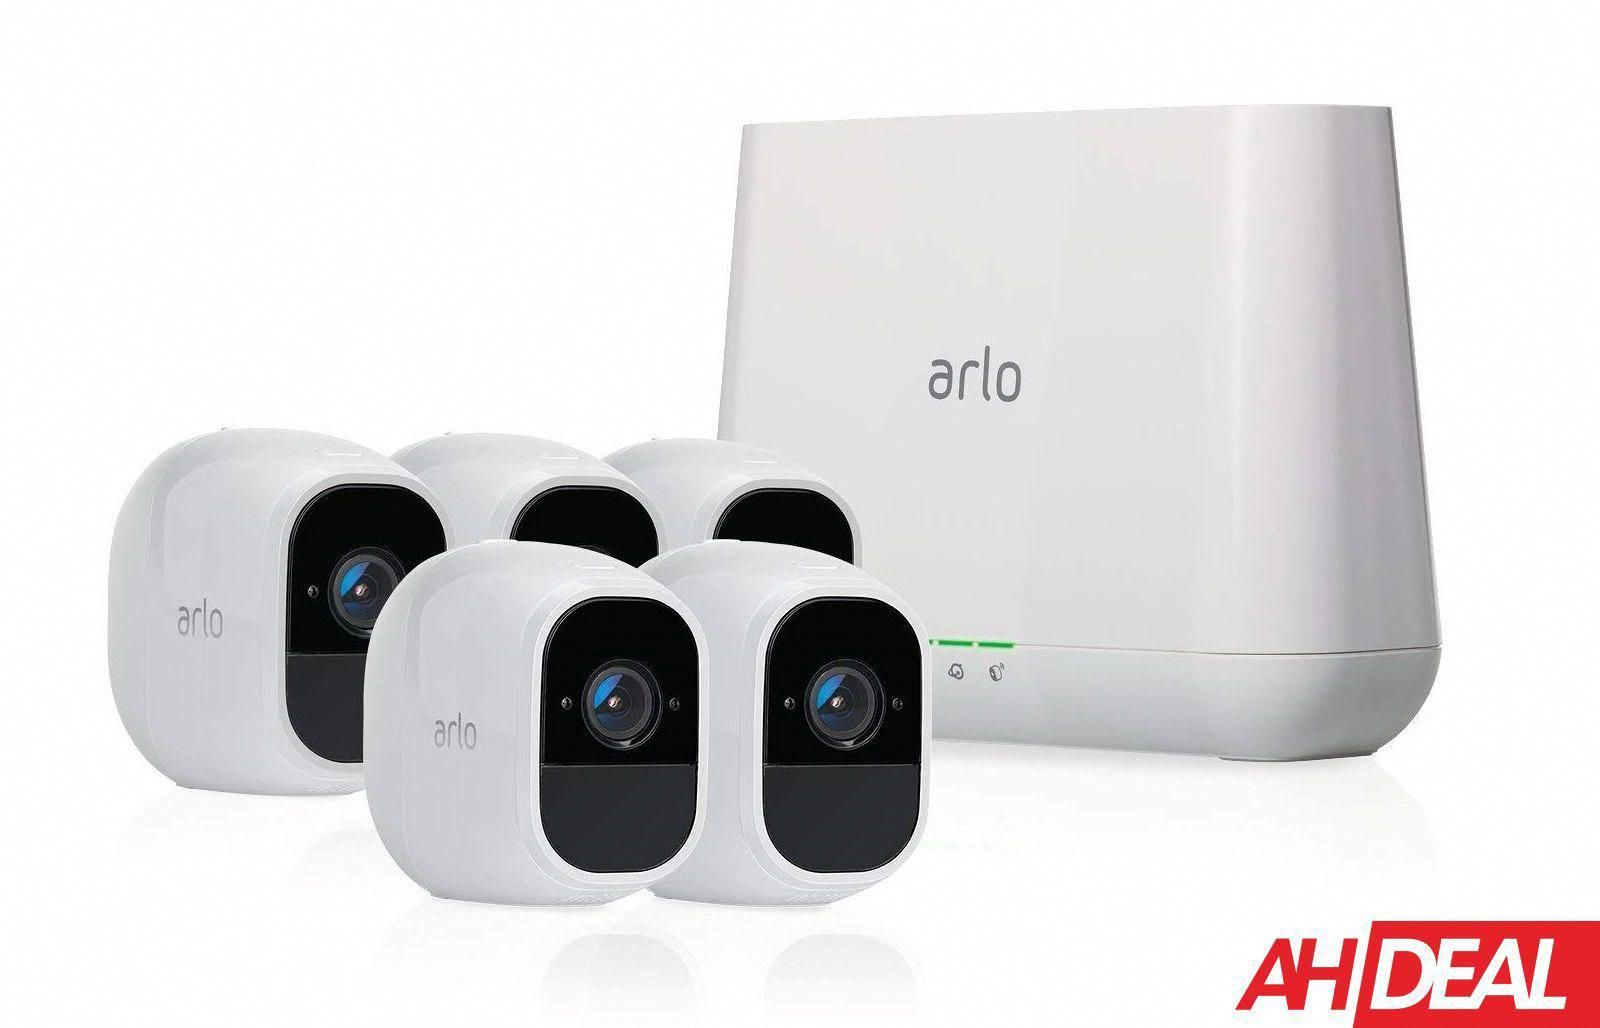 Arlo Pro 2 Wireless Home Security Camera System From 312 99 Today Wireless Home Security Systems Home Security Camera Systems Wireless Home Security Cameras